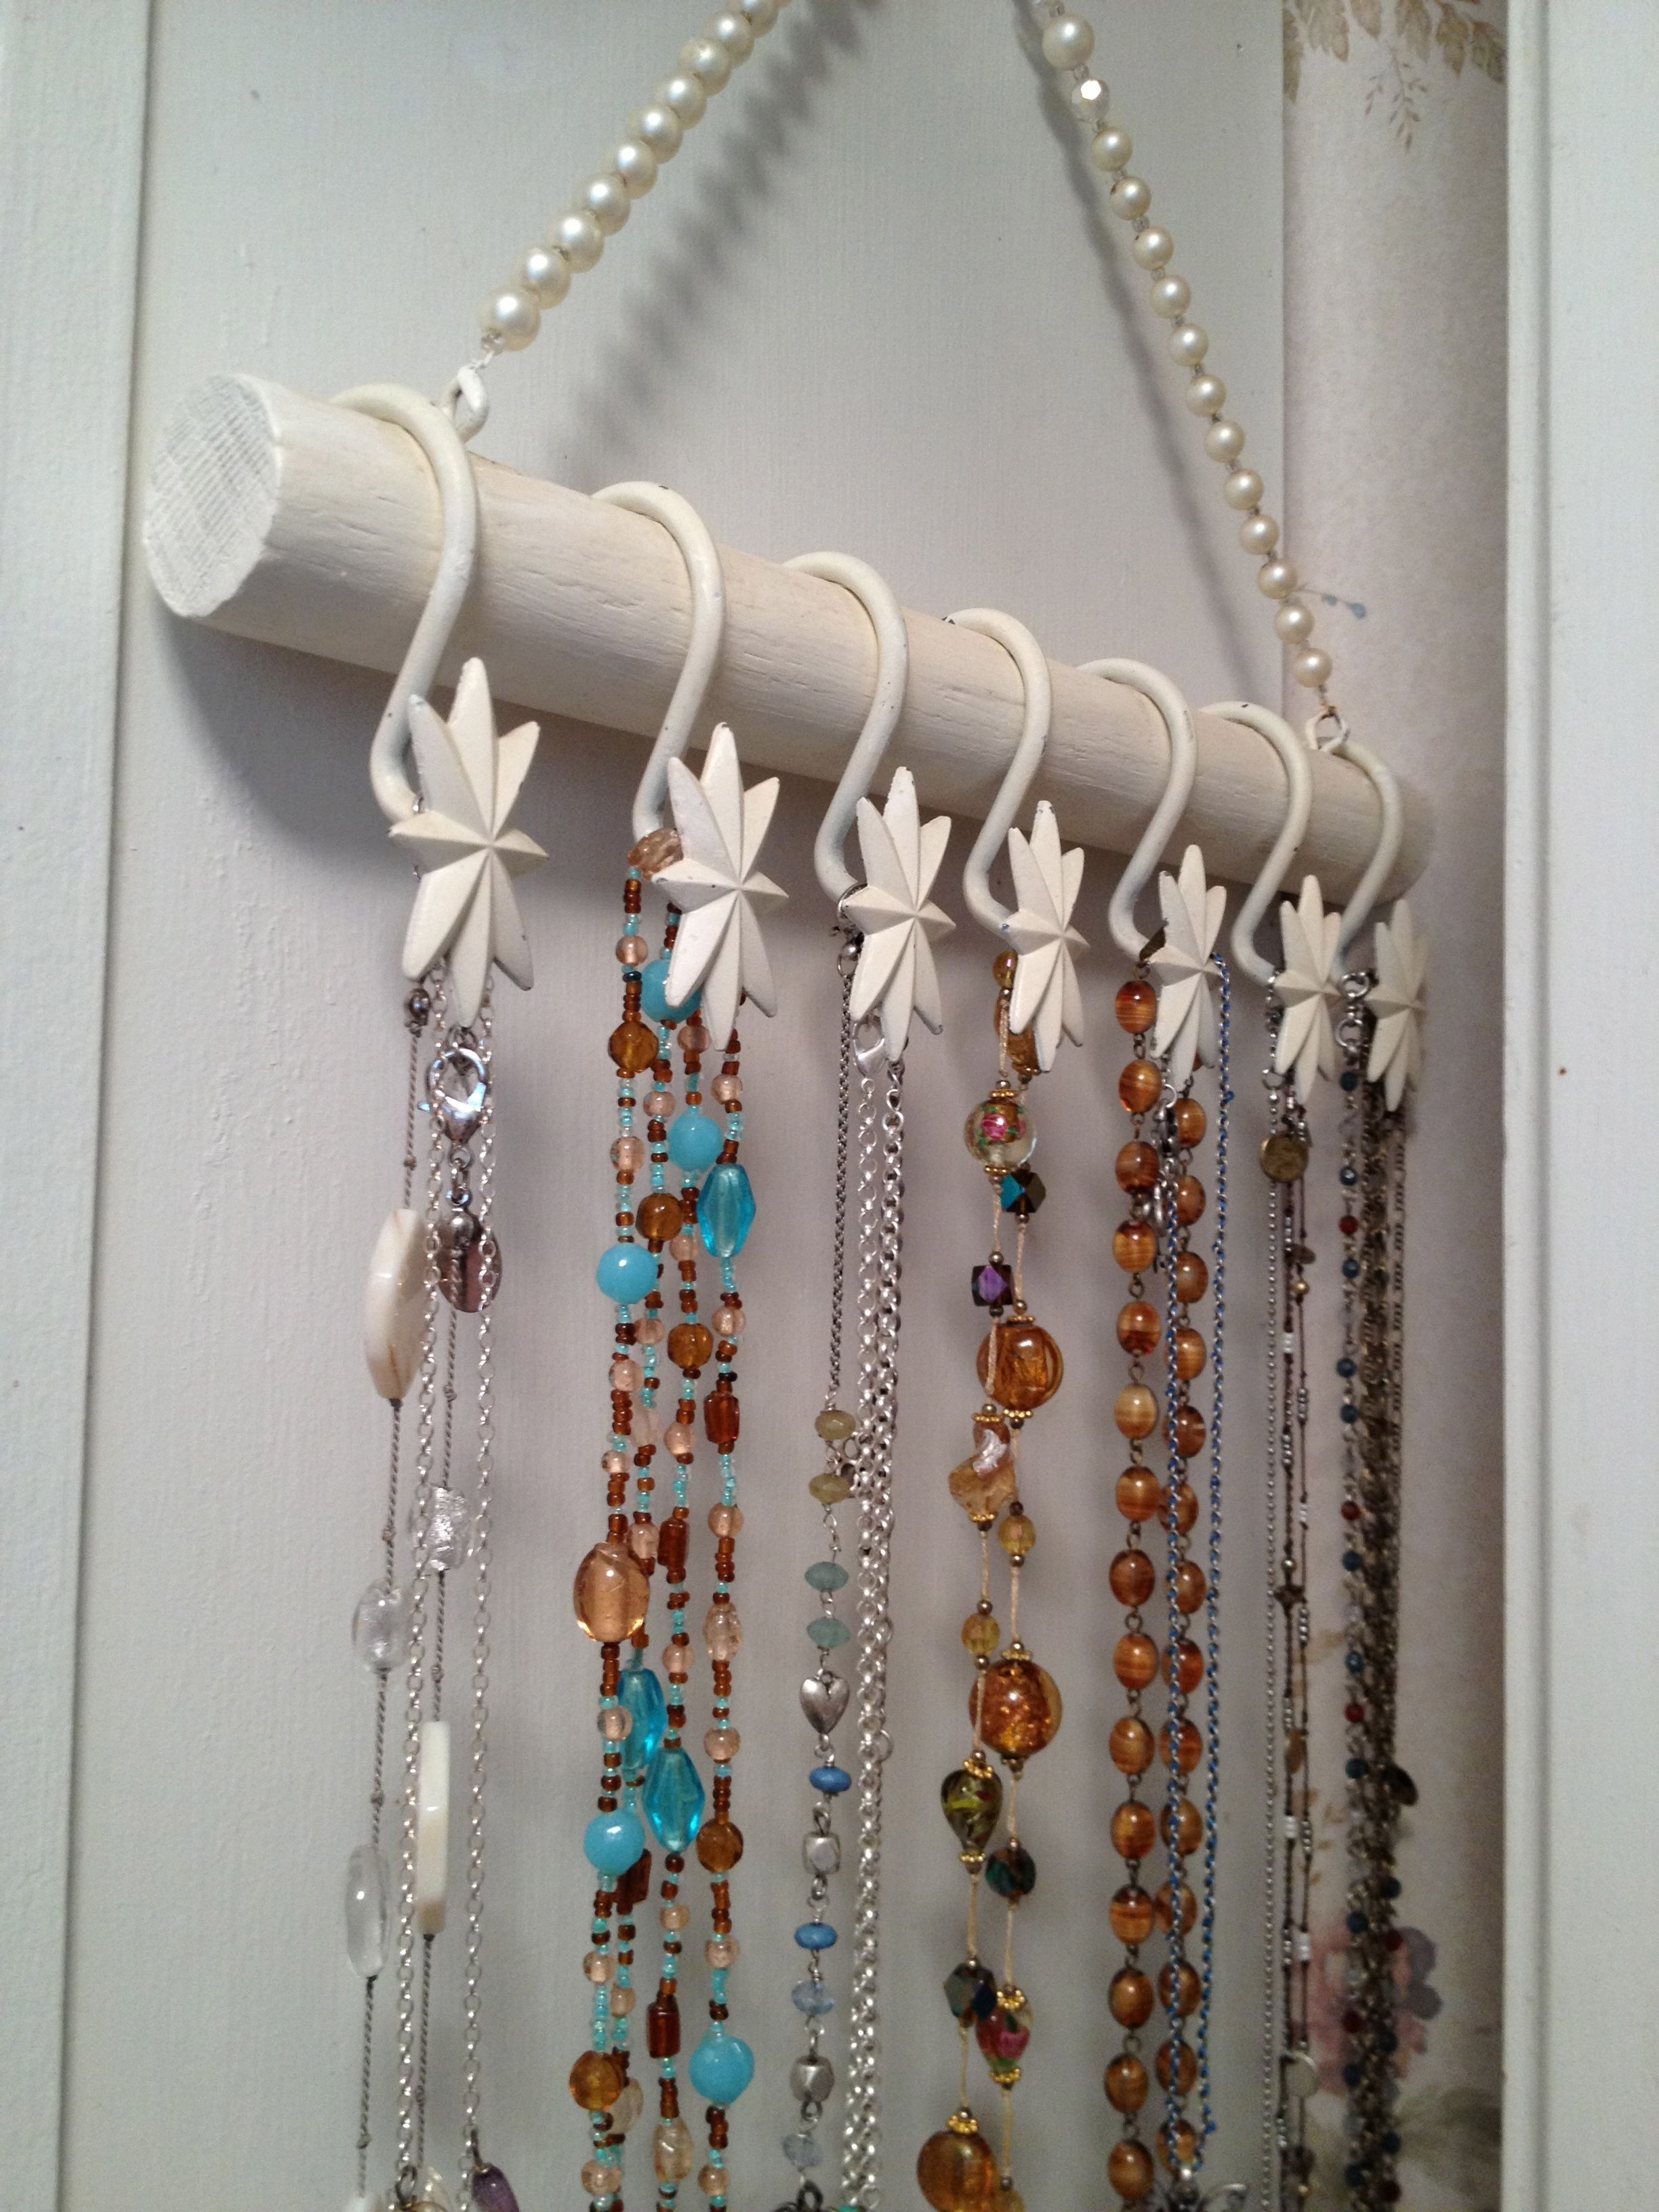 DIY Jewelry Hanger Made With Shower Curtain Hooks A Painted Wooden Dowel And Vintage Necklace For Hanging